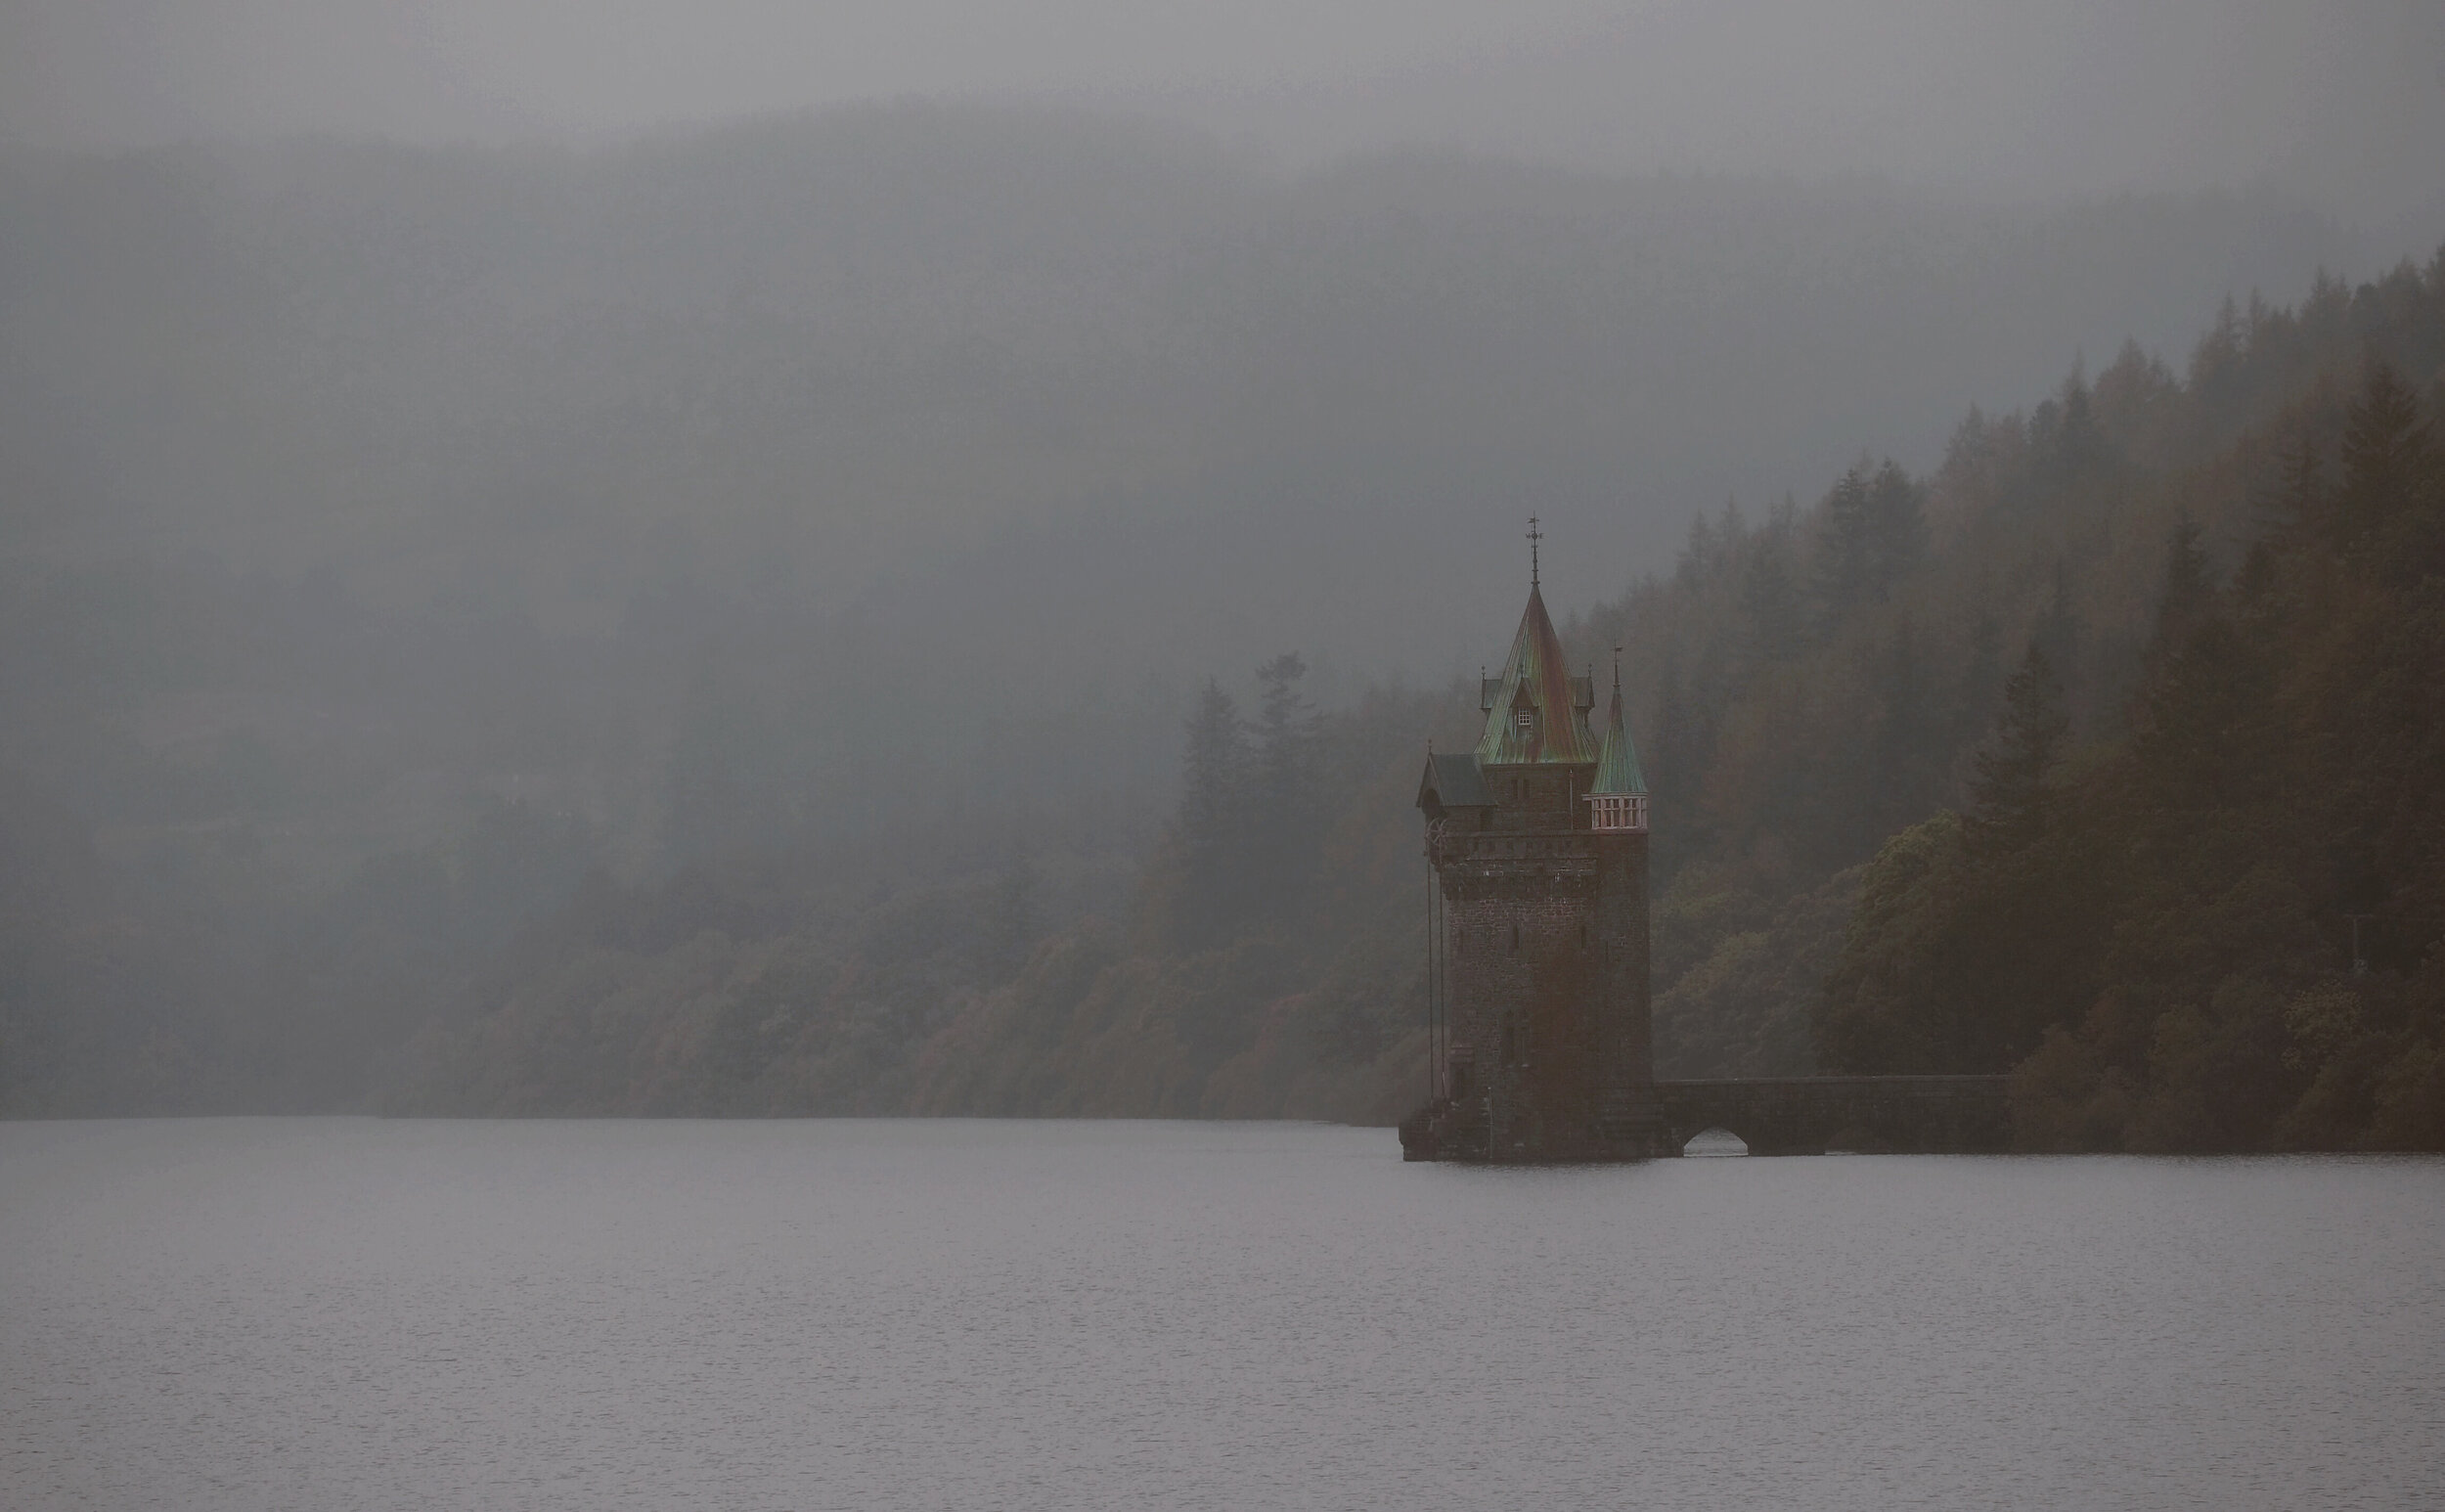 - We visited the area on a wet and misty Autumn day, but the lake and surrounding hills are beautiful at any time of year.The mist rolled in from Snowdonia during our time there. It left the lake covered in a thick, beautiful, rolling blanket.